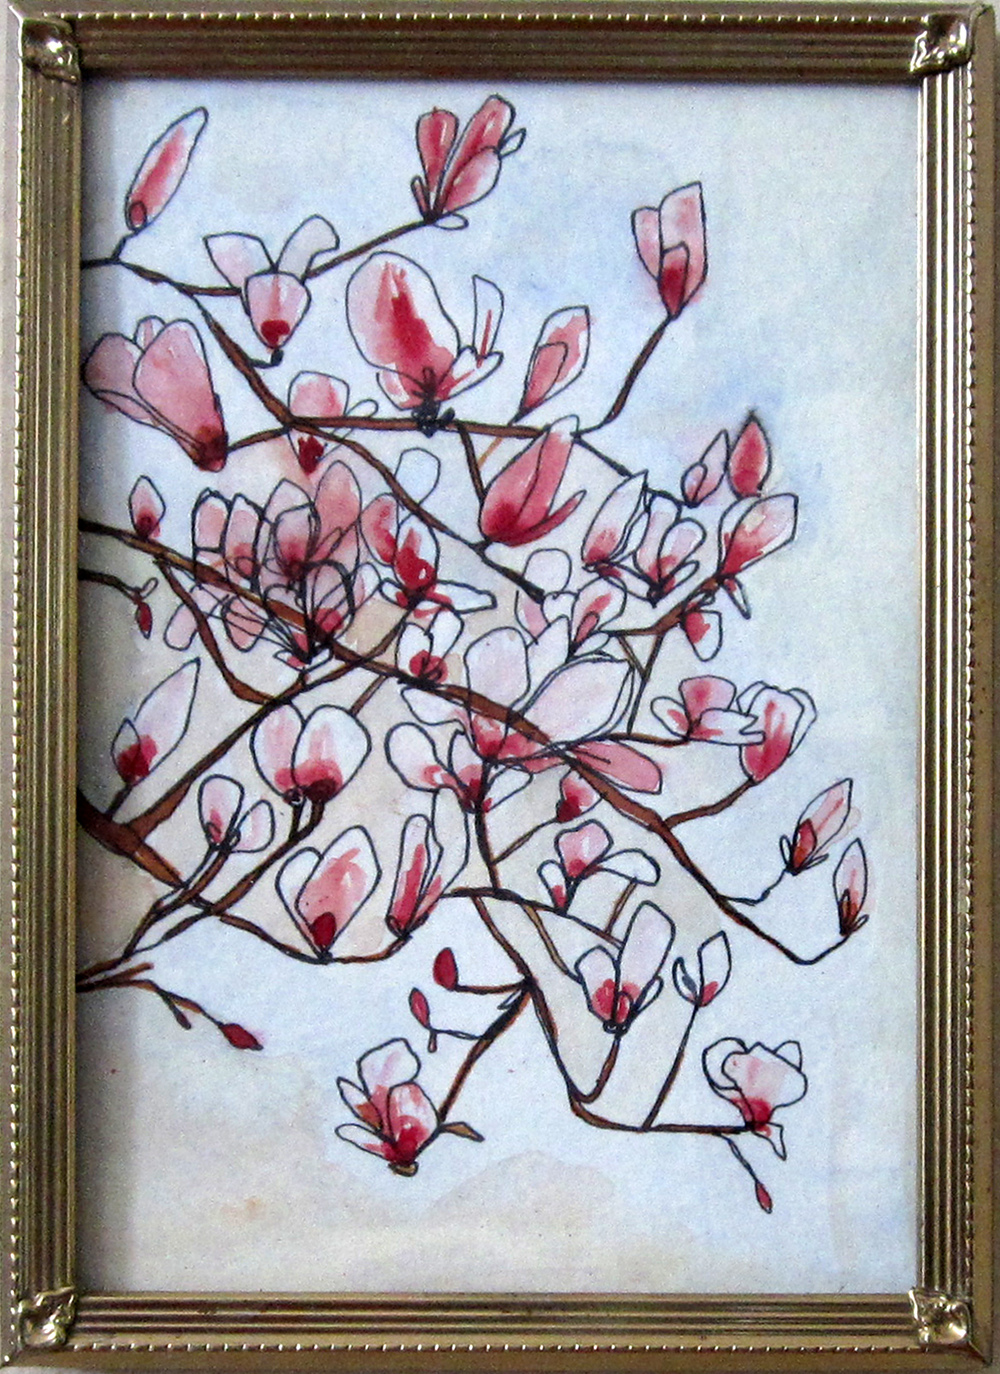 21: Magnolias in Bloom-sold